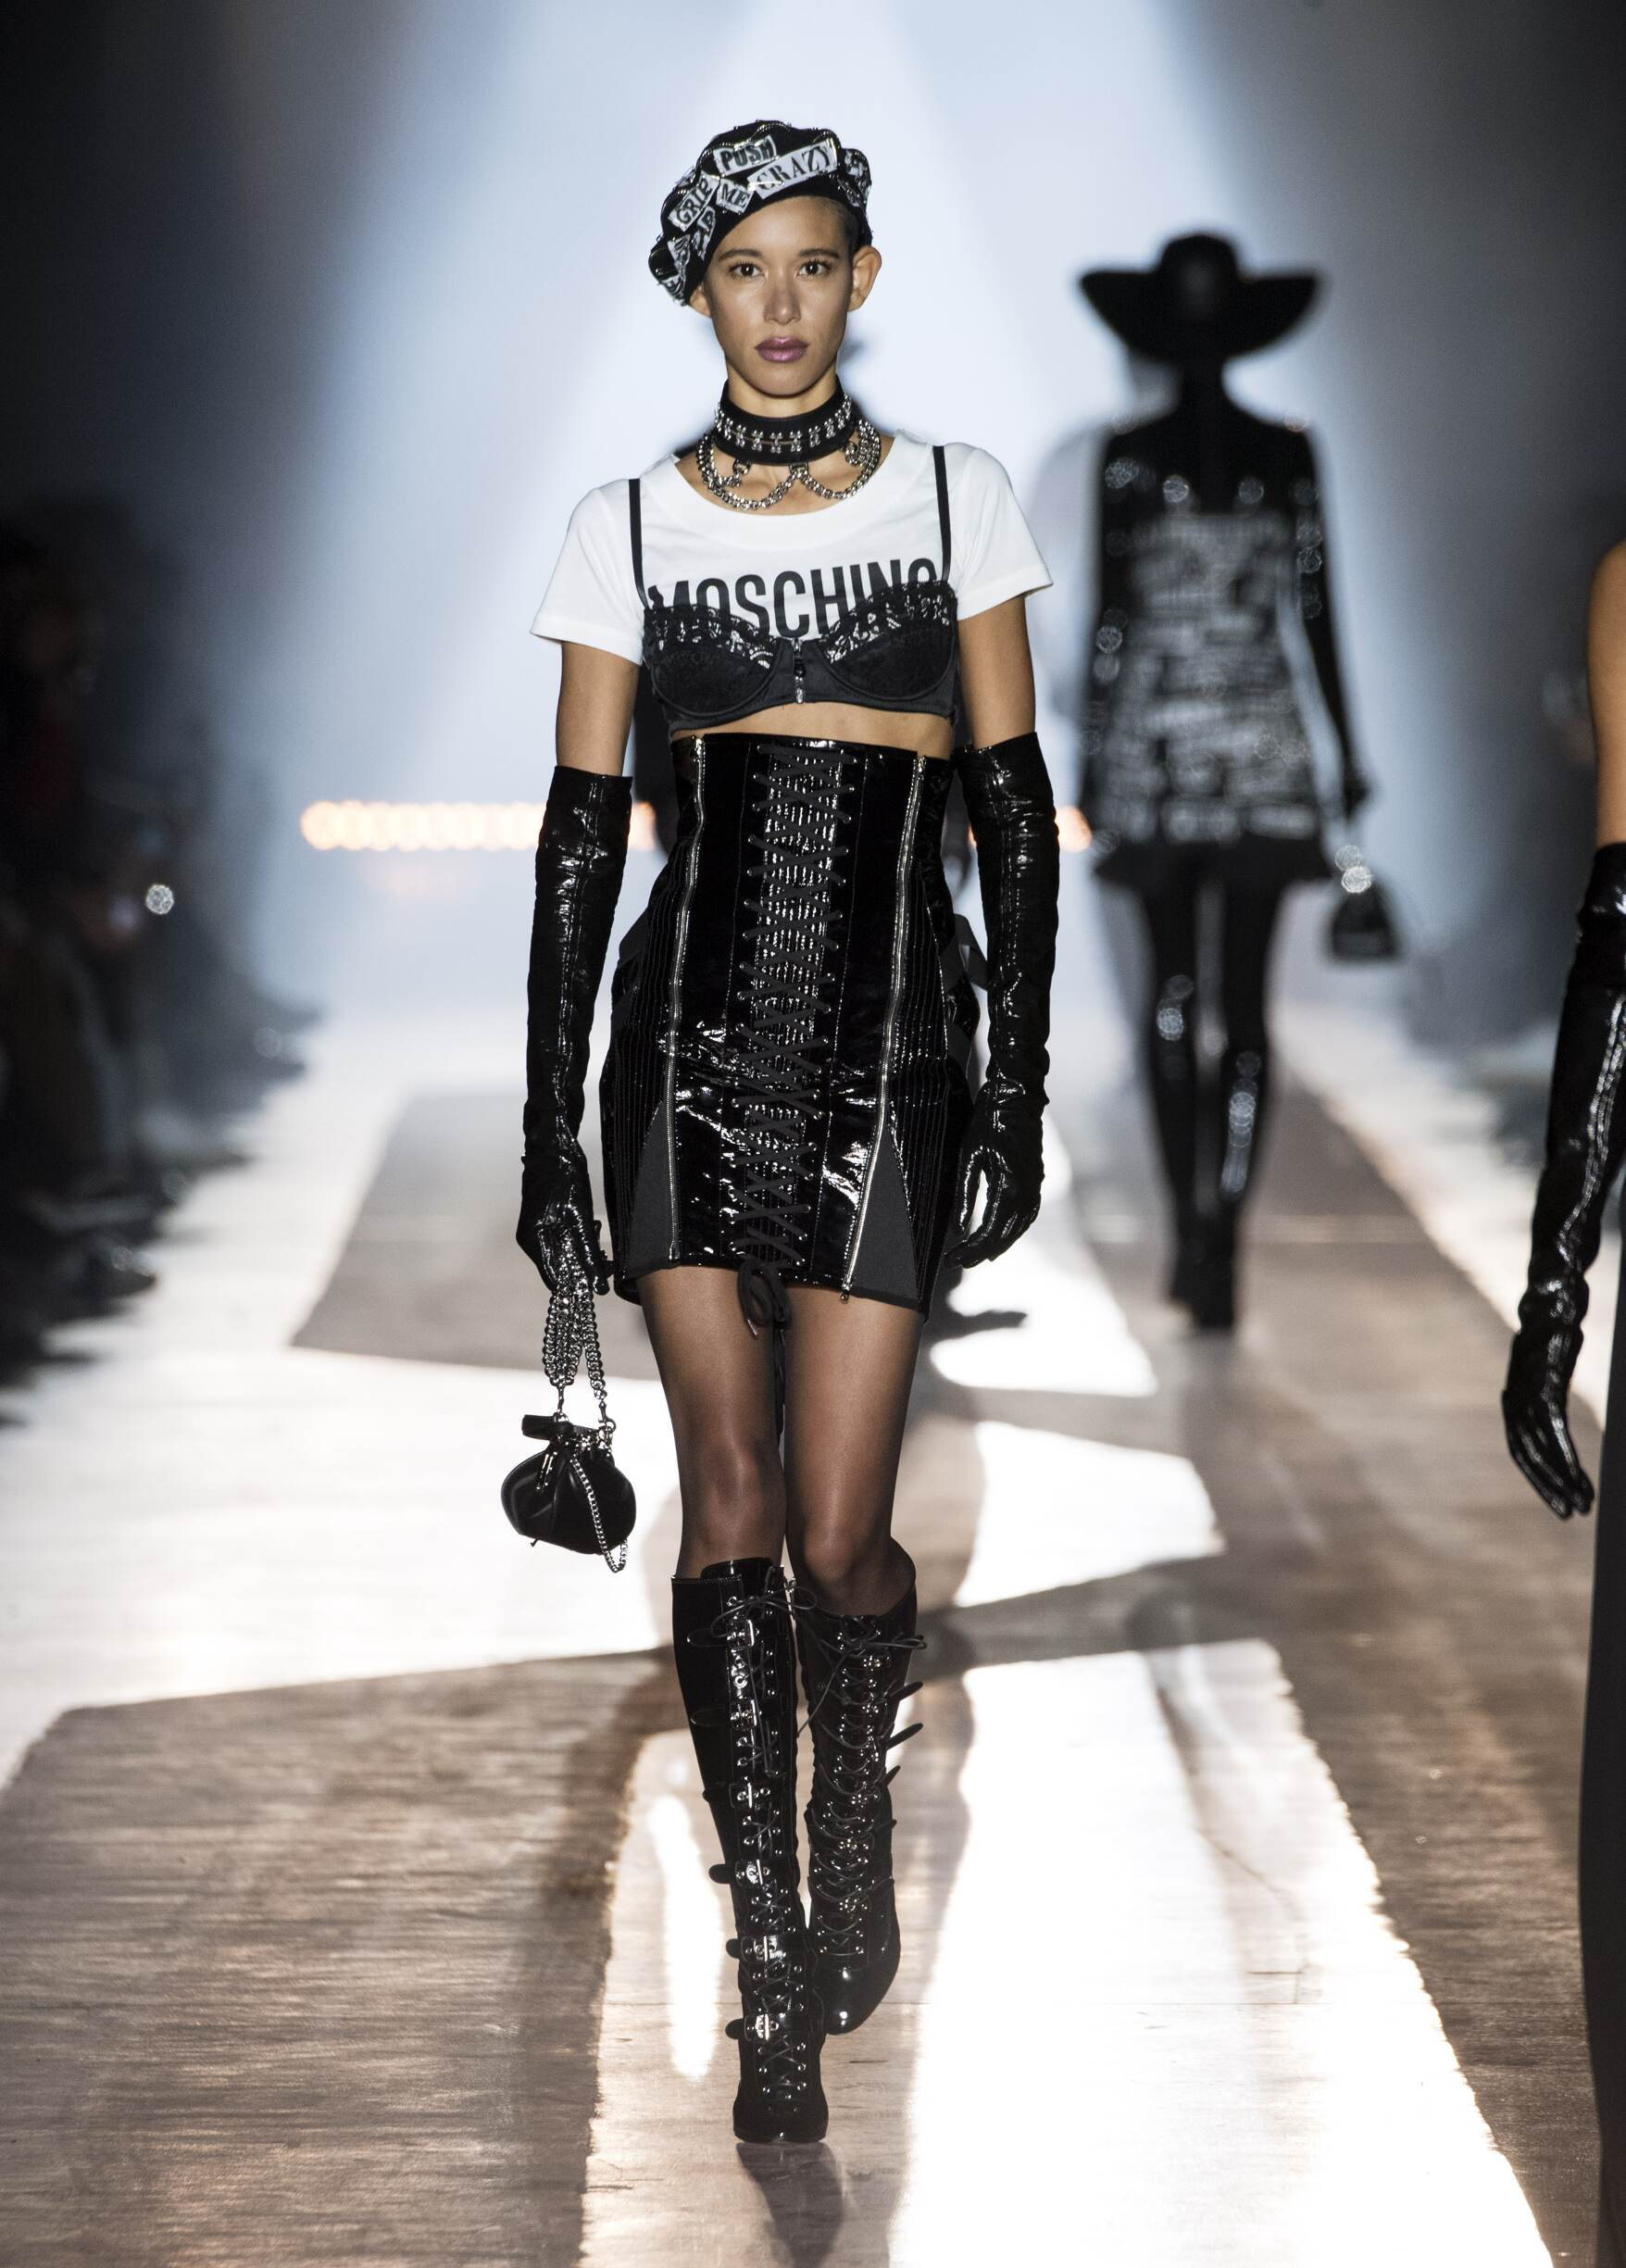 Fashion Woman Model Moschino Runway